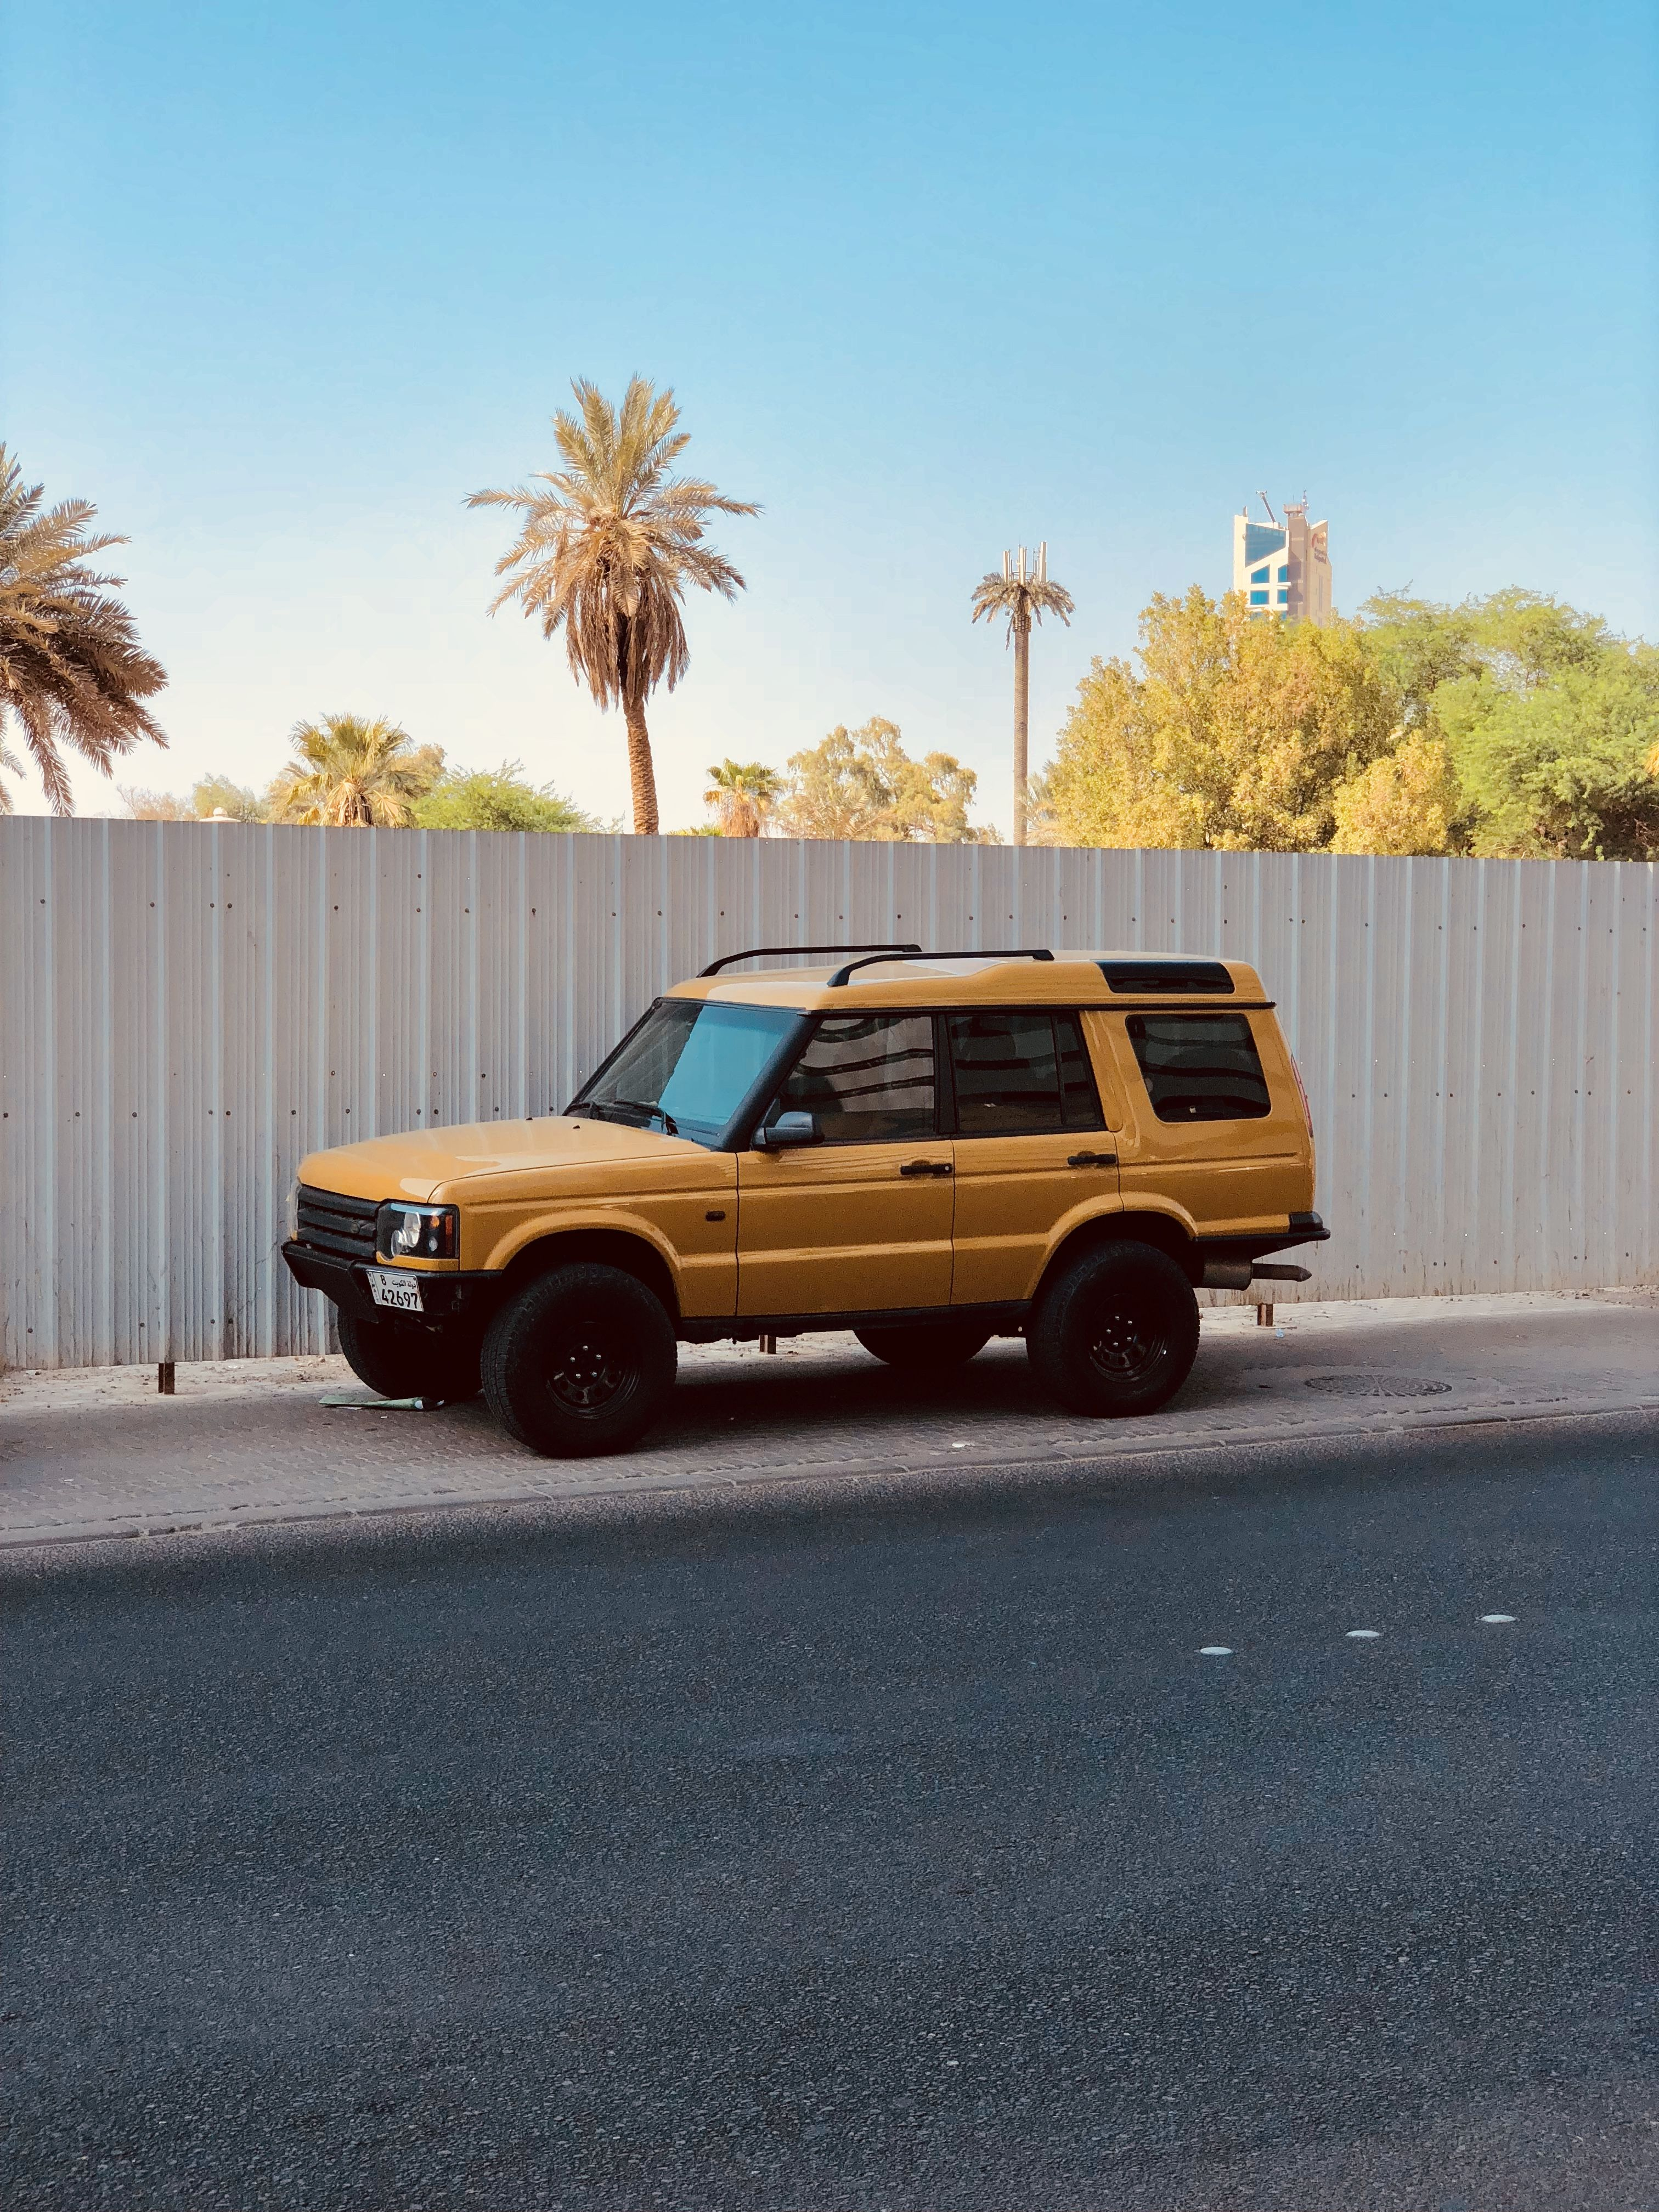 Bahama Gold Discovery 2003 Land Rover Land Rover Discovery 2 Land Rover Discovery 1